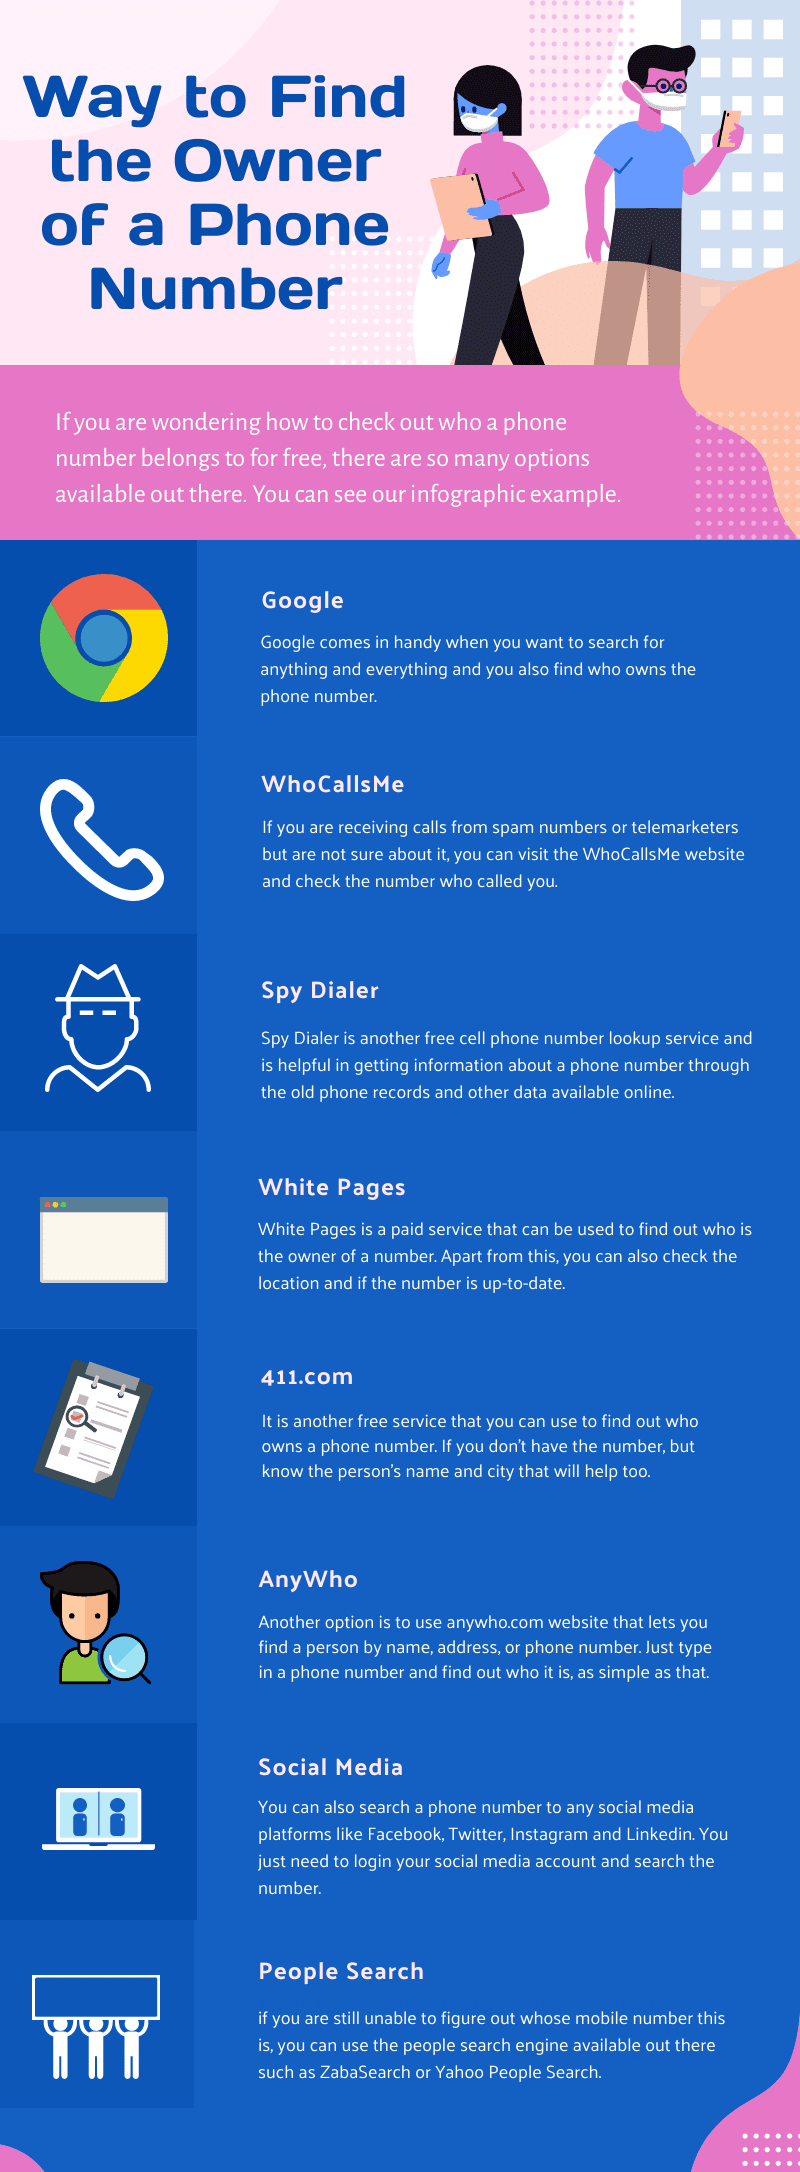 Ways to Find the Owner of a Phone Number